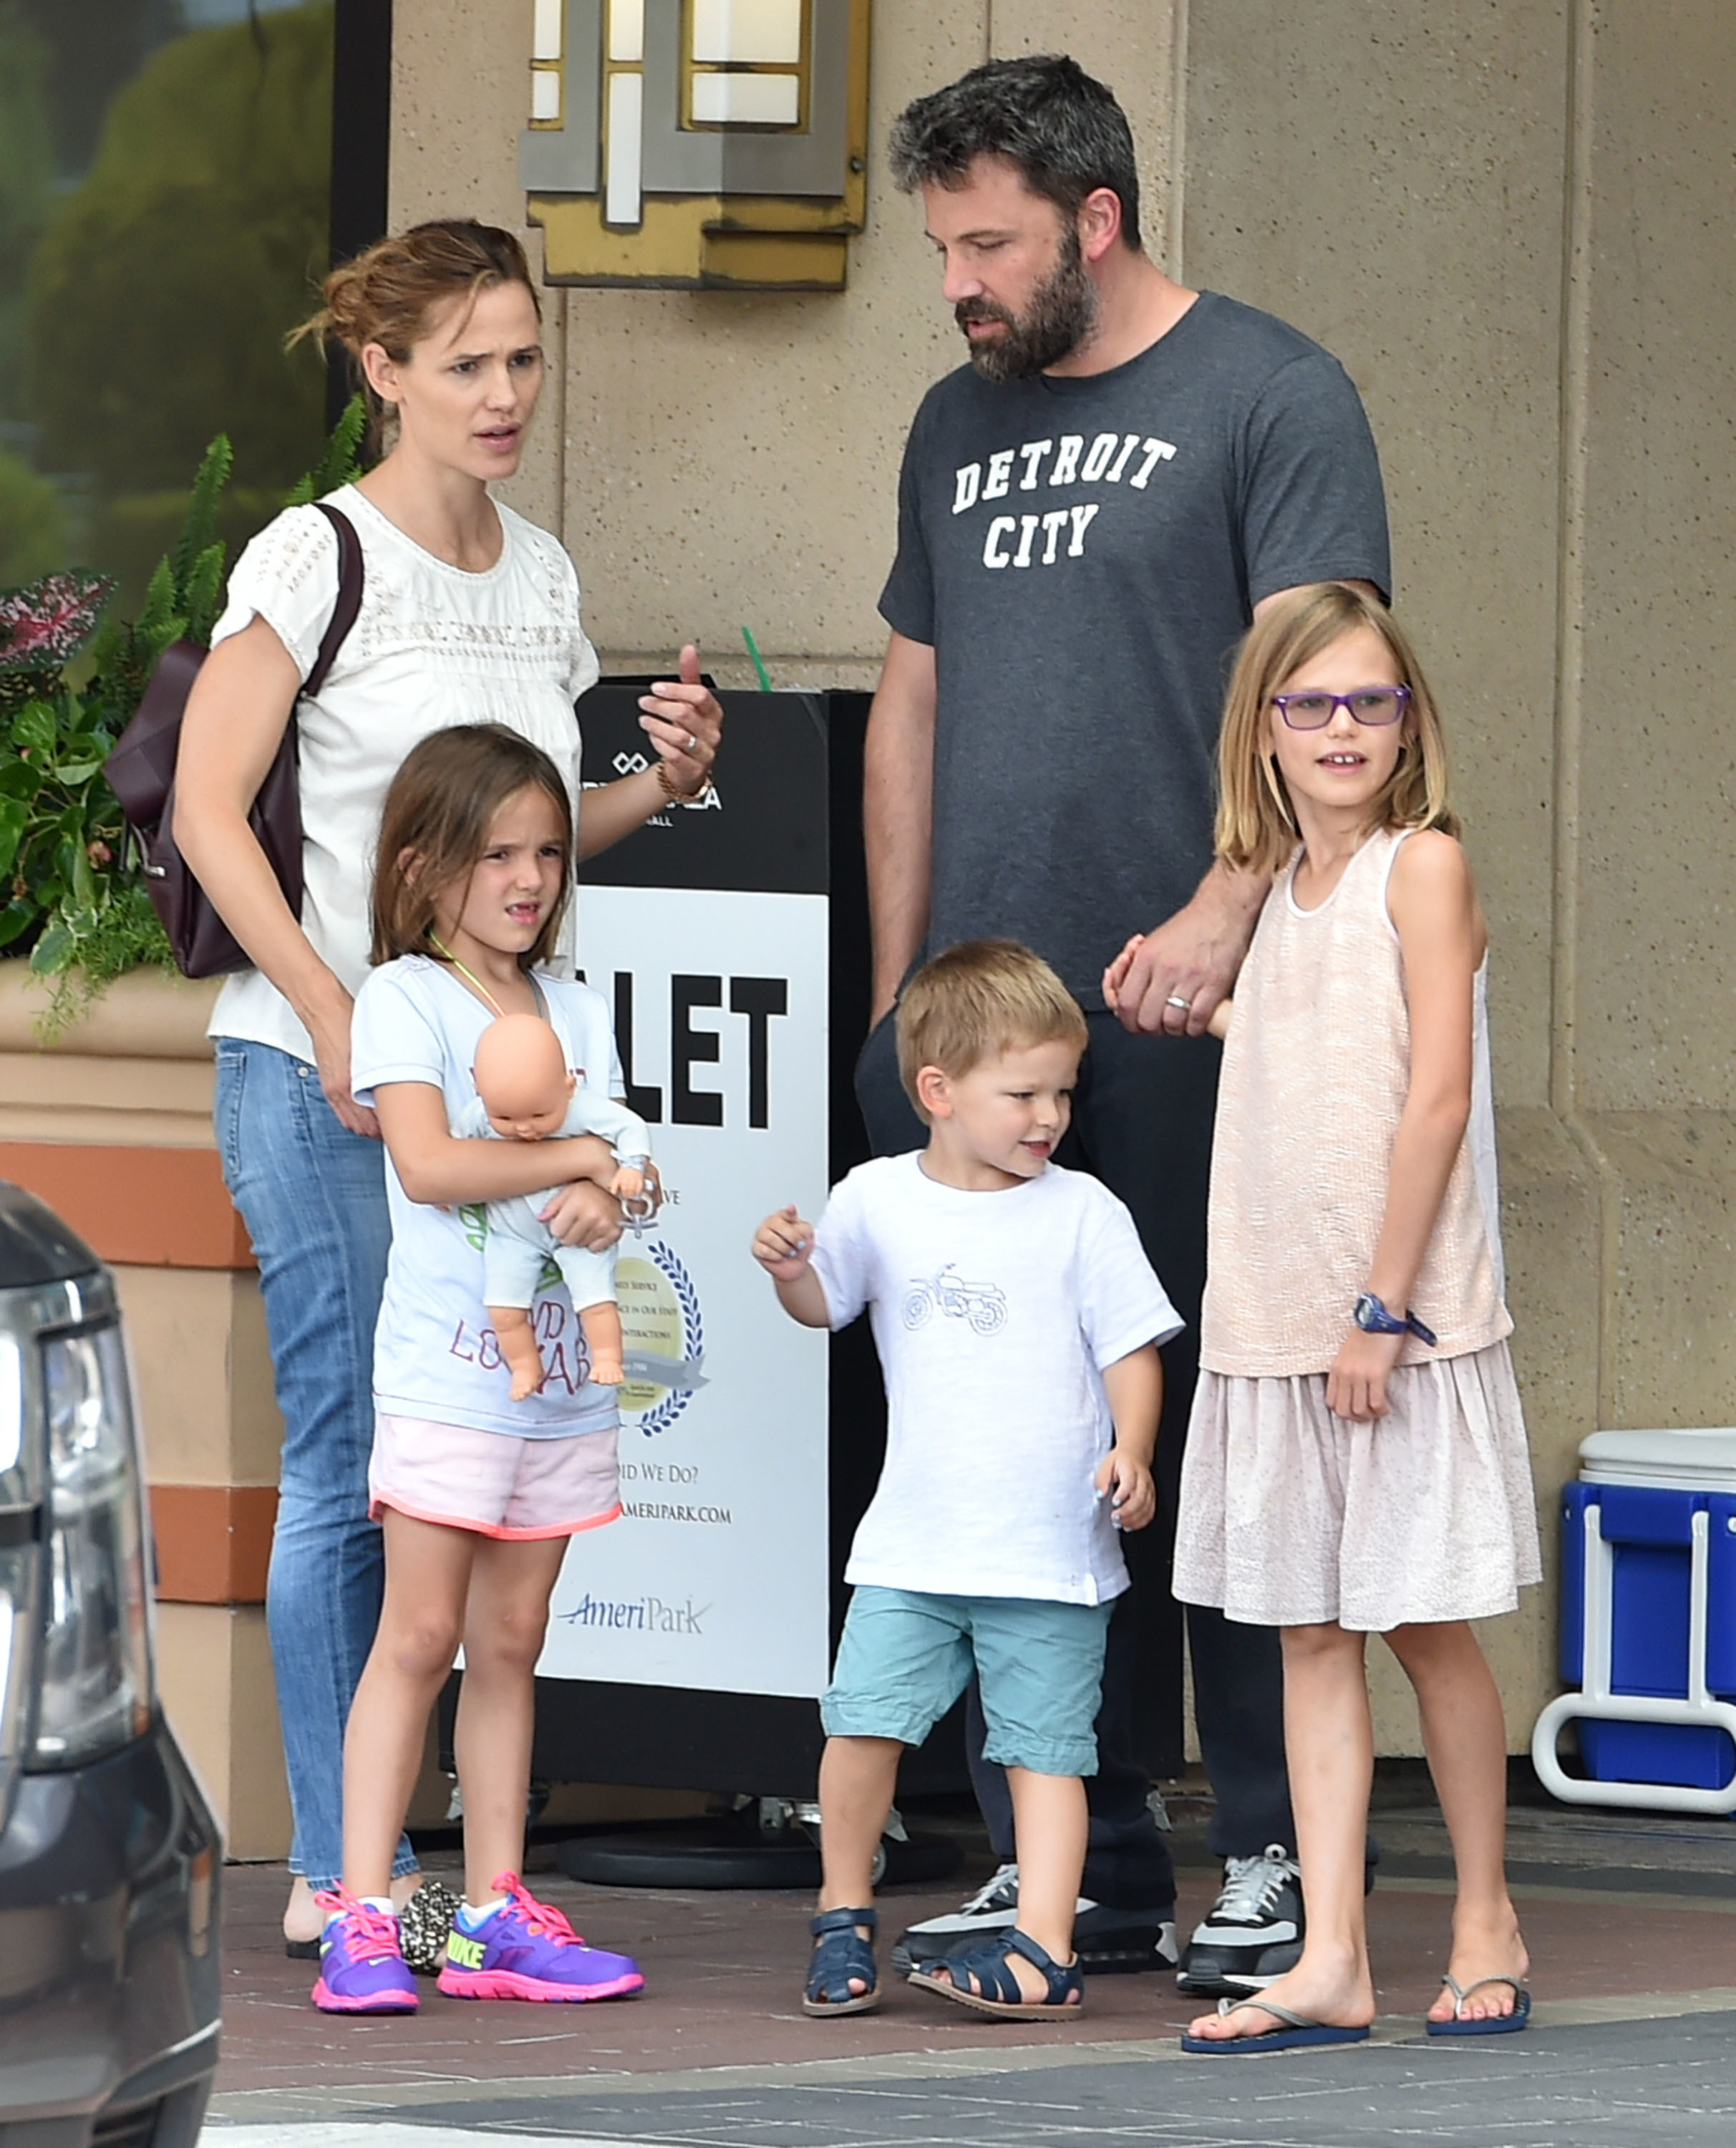 What's up with Jennifer Garner and Michael Vartan?